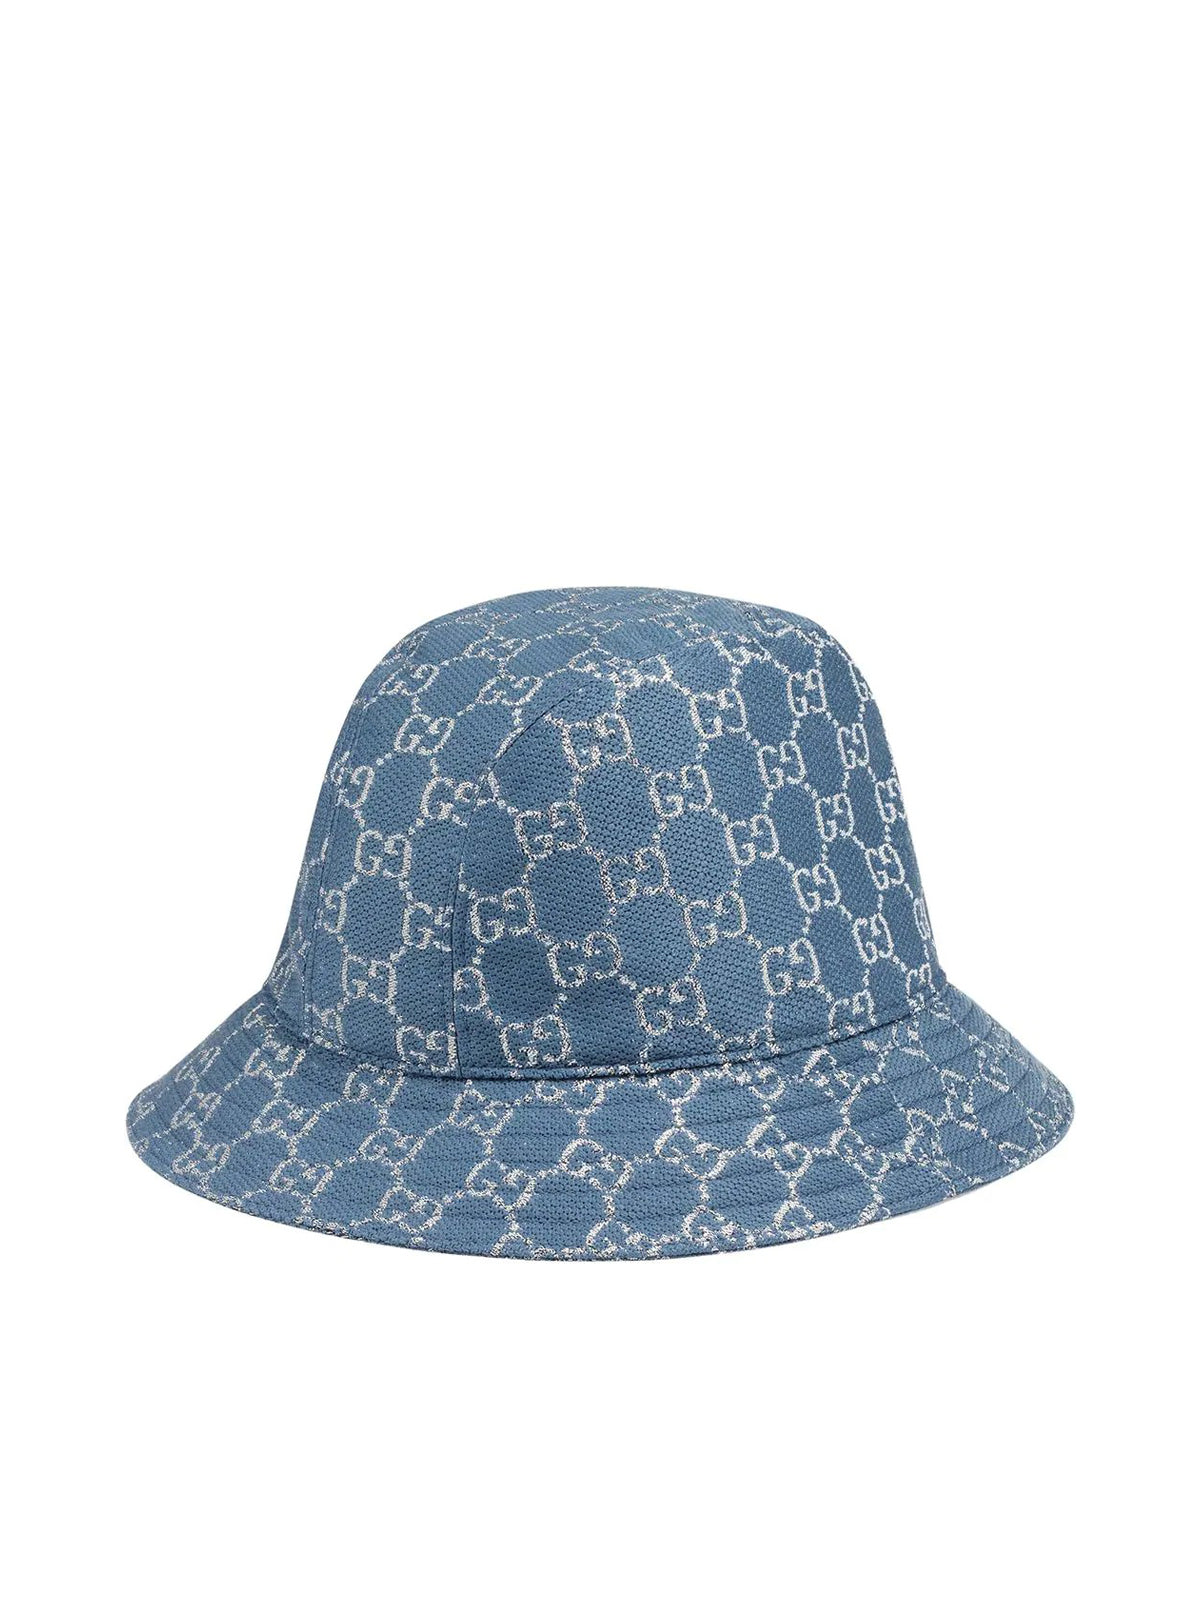 GG lamé bucket hat